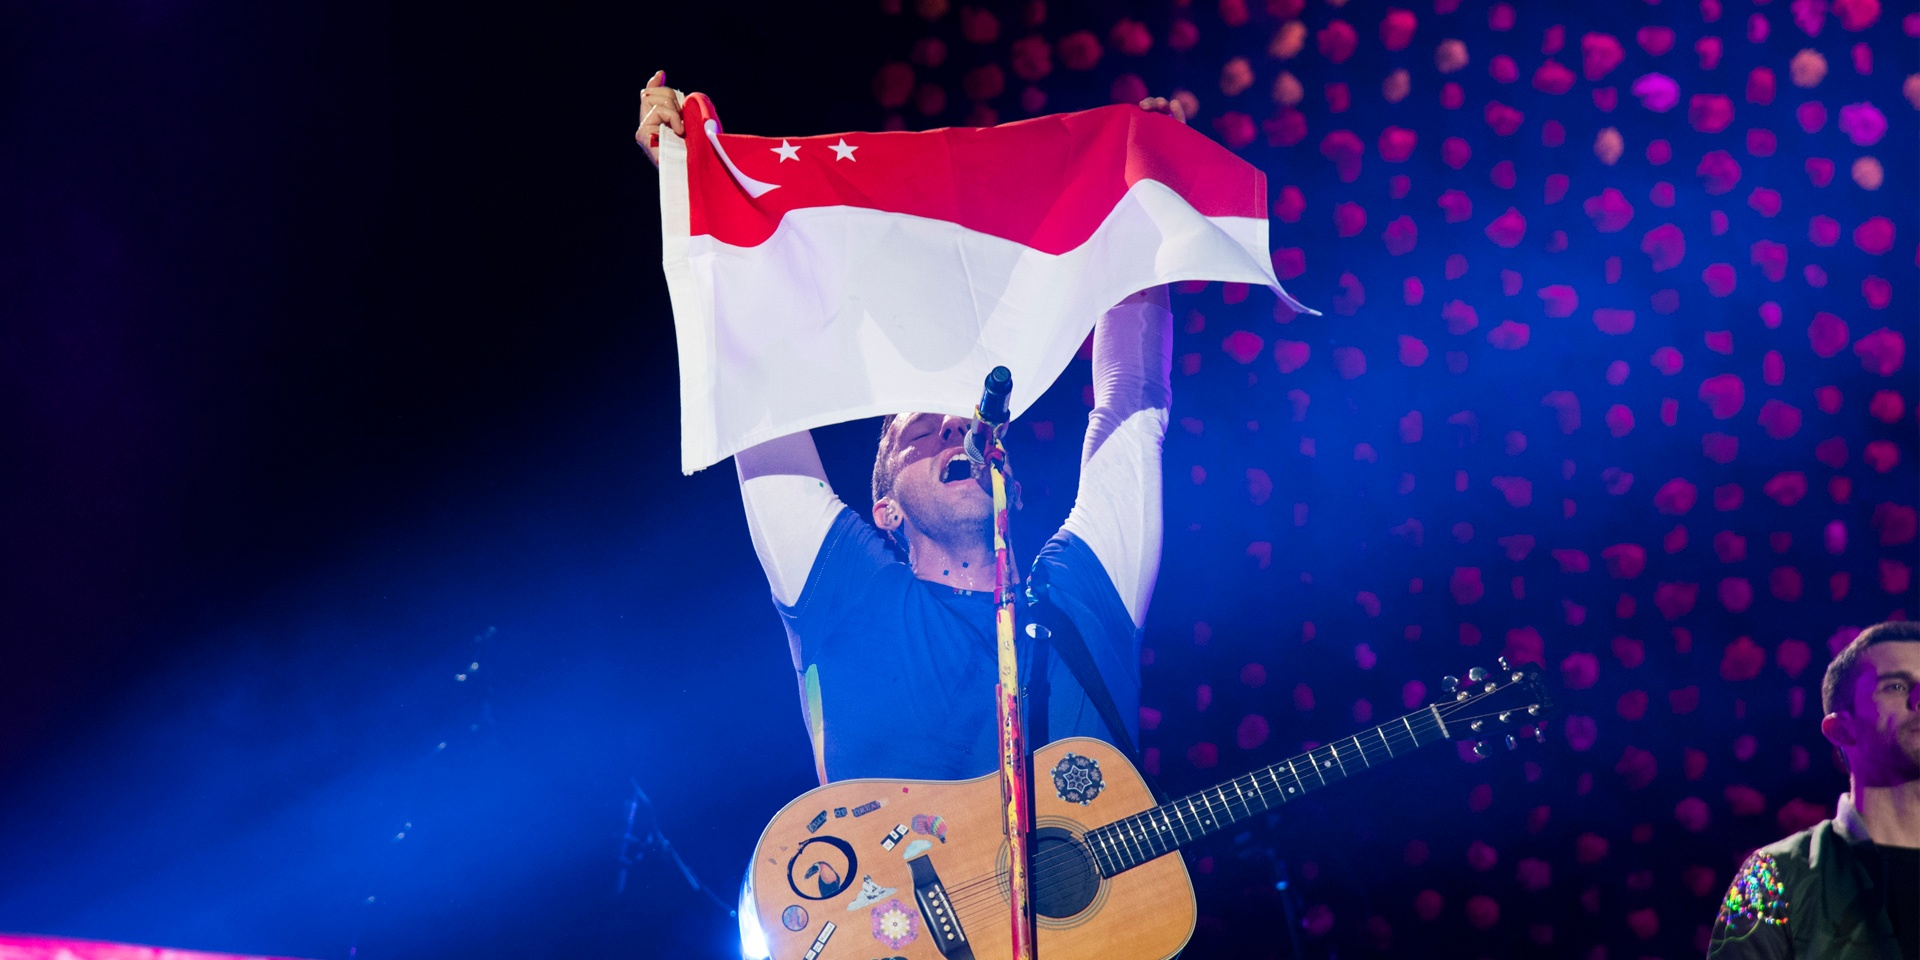 GIG REPORT: Coldplay performs stellar first night in Singapore with over 50,000 in attendance